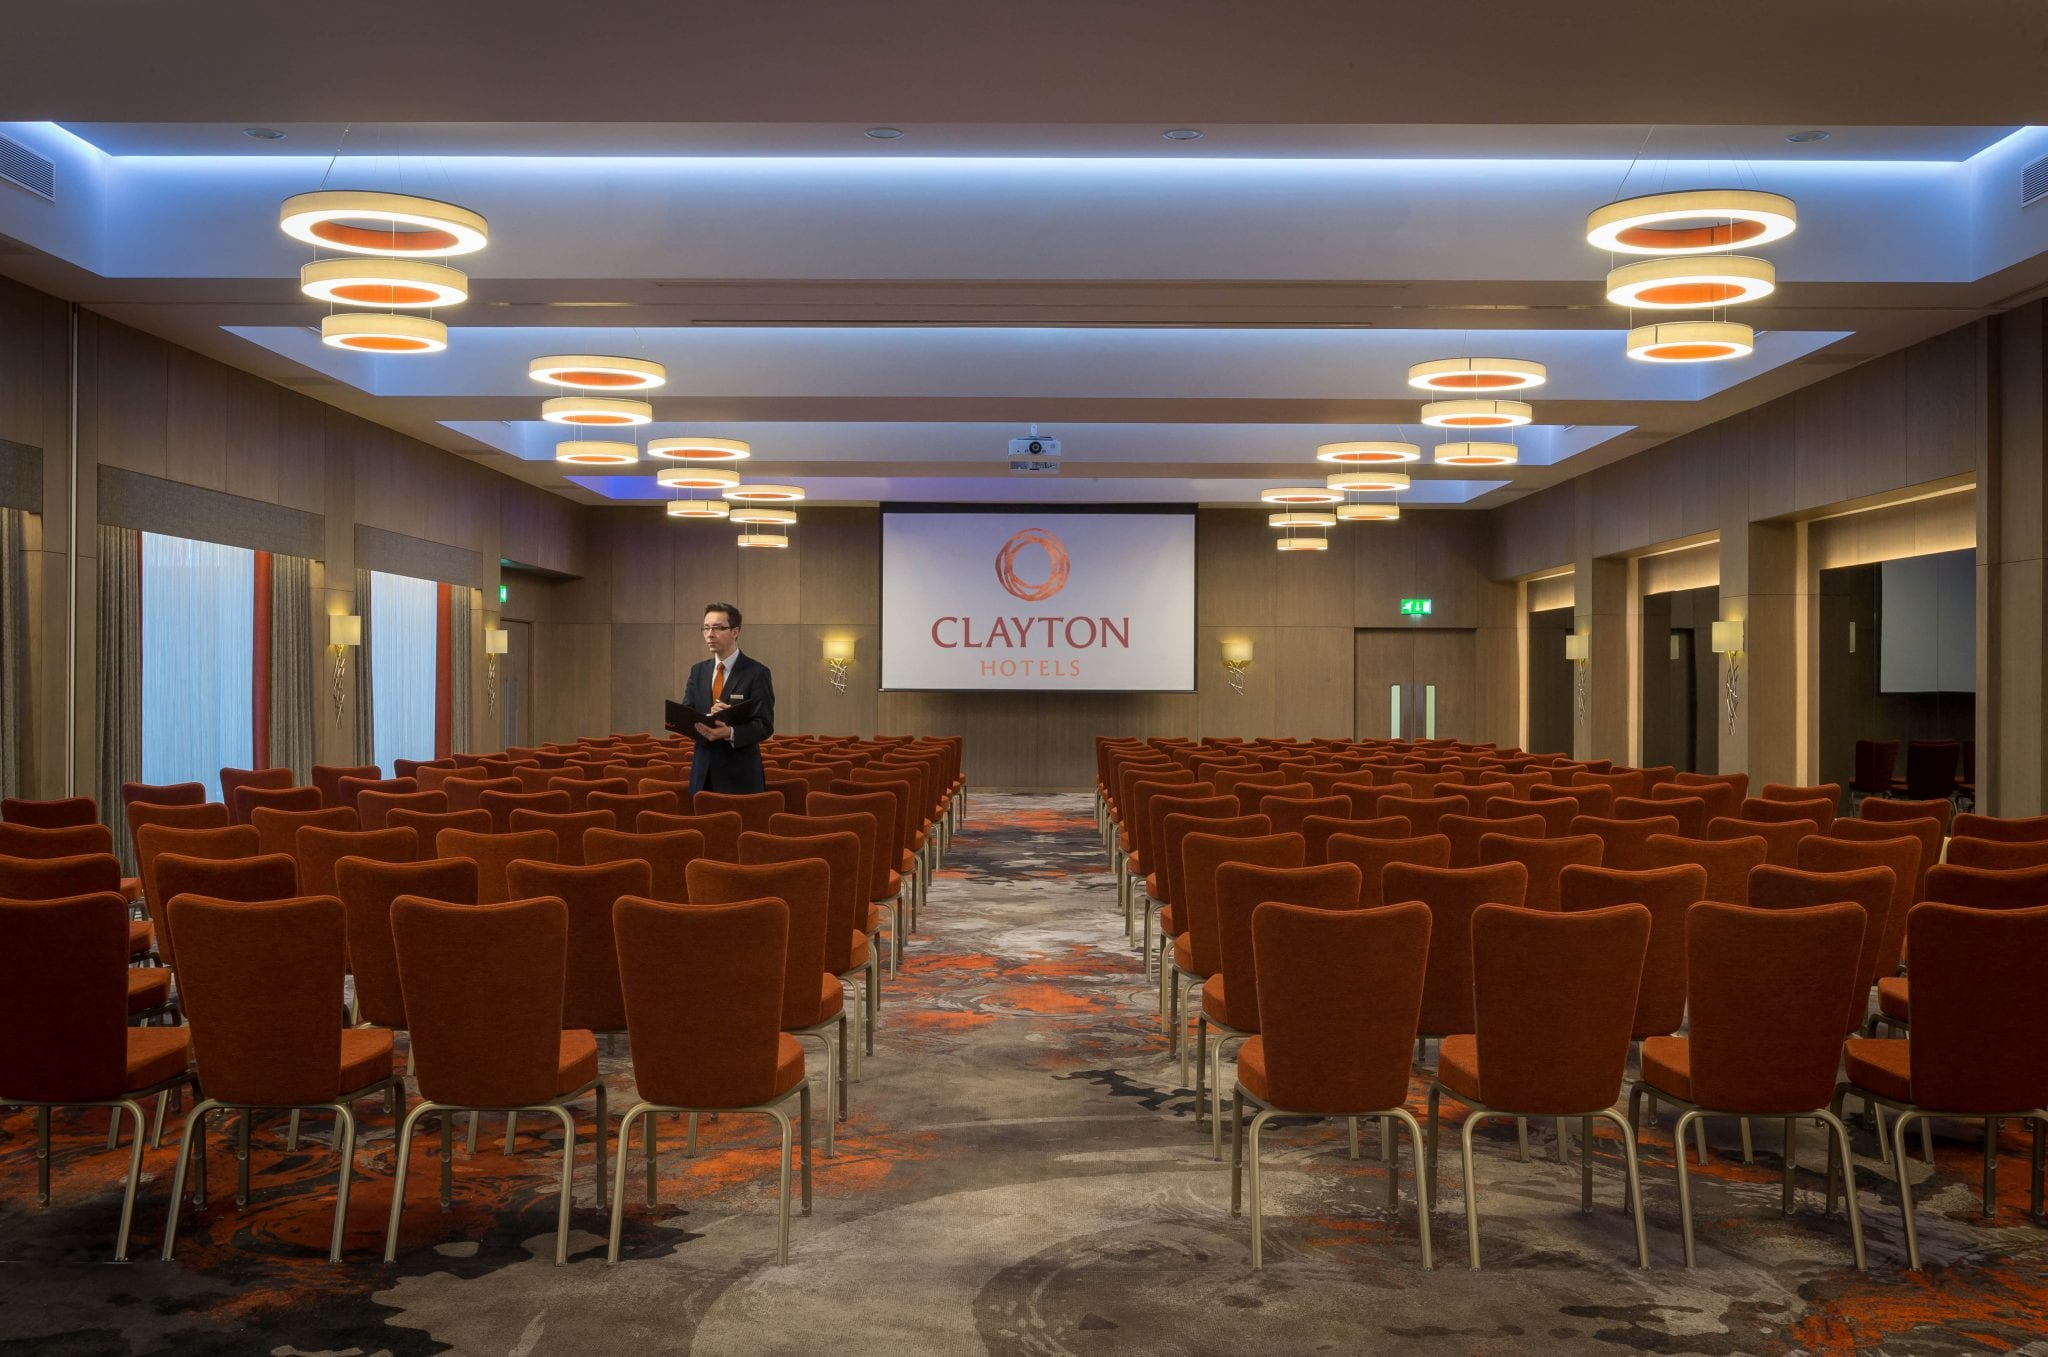 Clayton_Hotel_Chiswick_meeting_room_set_theatre_style